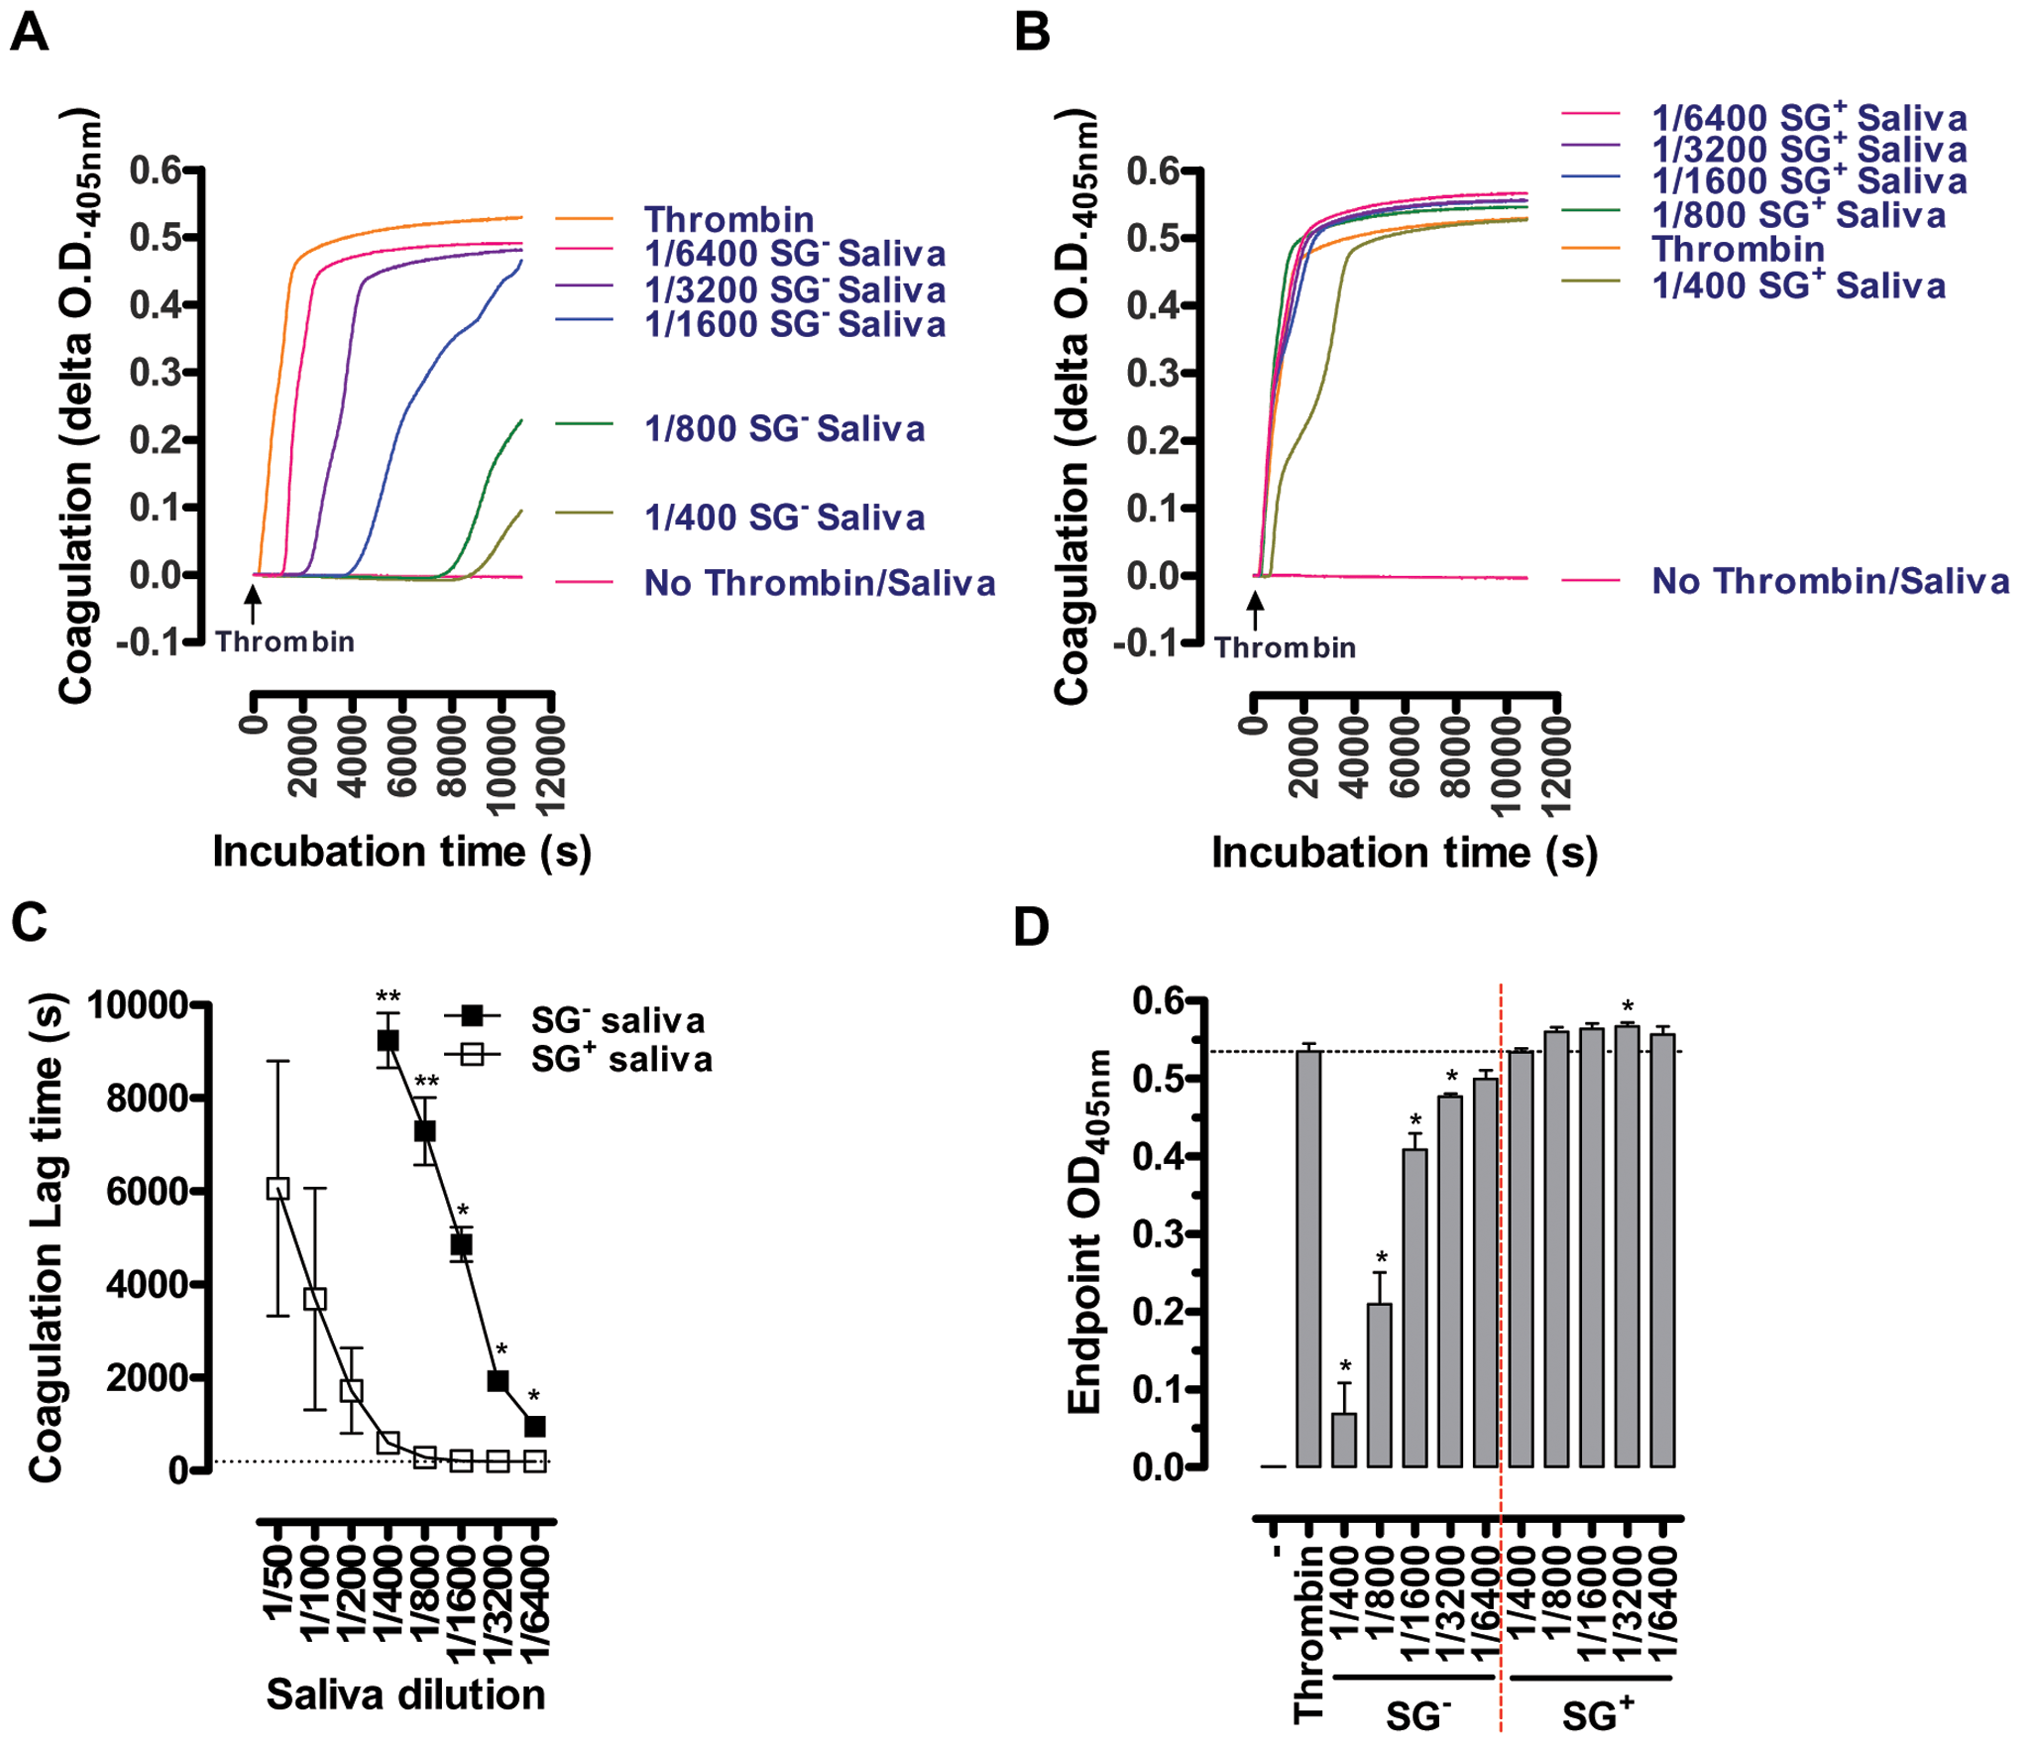 Effect of the <i>T. brucei</i> salivary gland infection on the anti-coagulant properties of tsetse fly saliva: inhibition of 25 mU/ml thrombin-induced coagulation by ½ serial SG<sup>+</sup> and SG<sup>-</sup> saliva dilutions (1/50 to 1/6400).